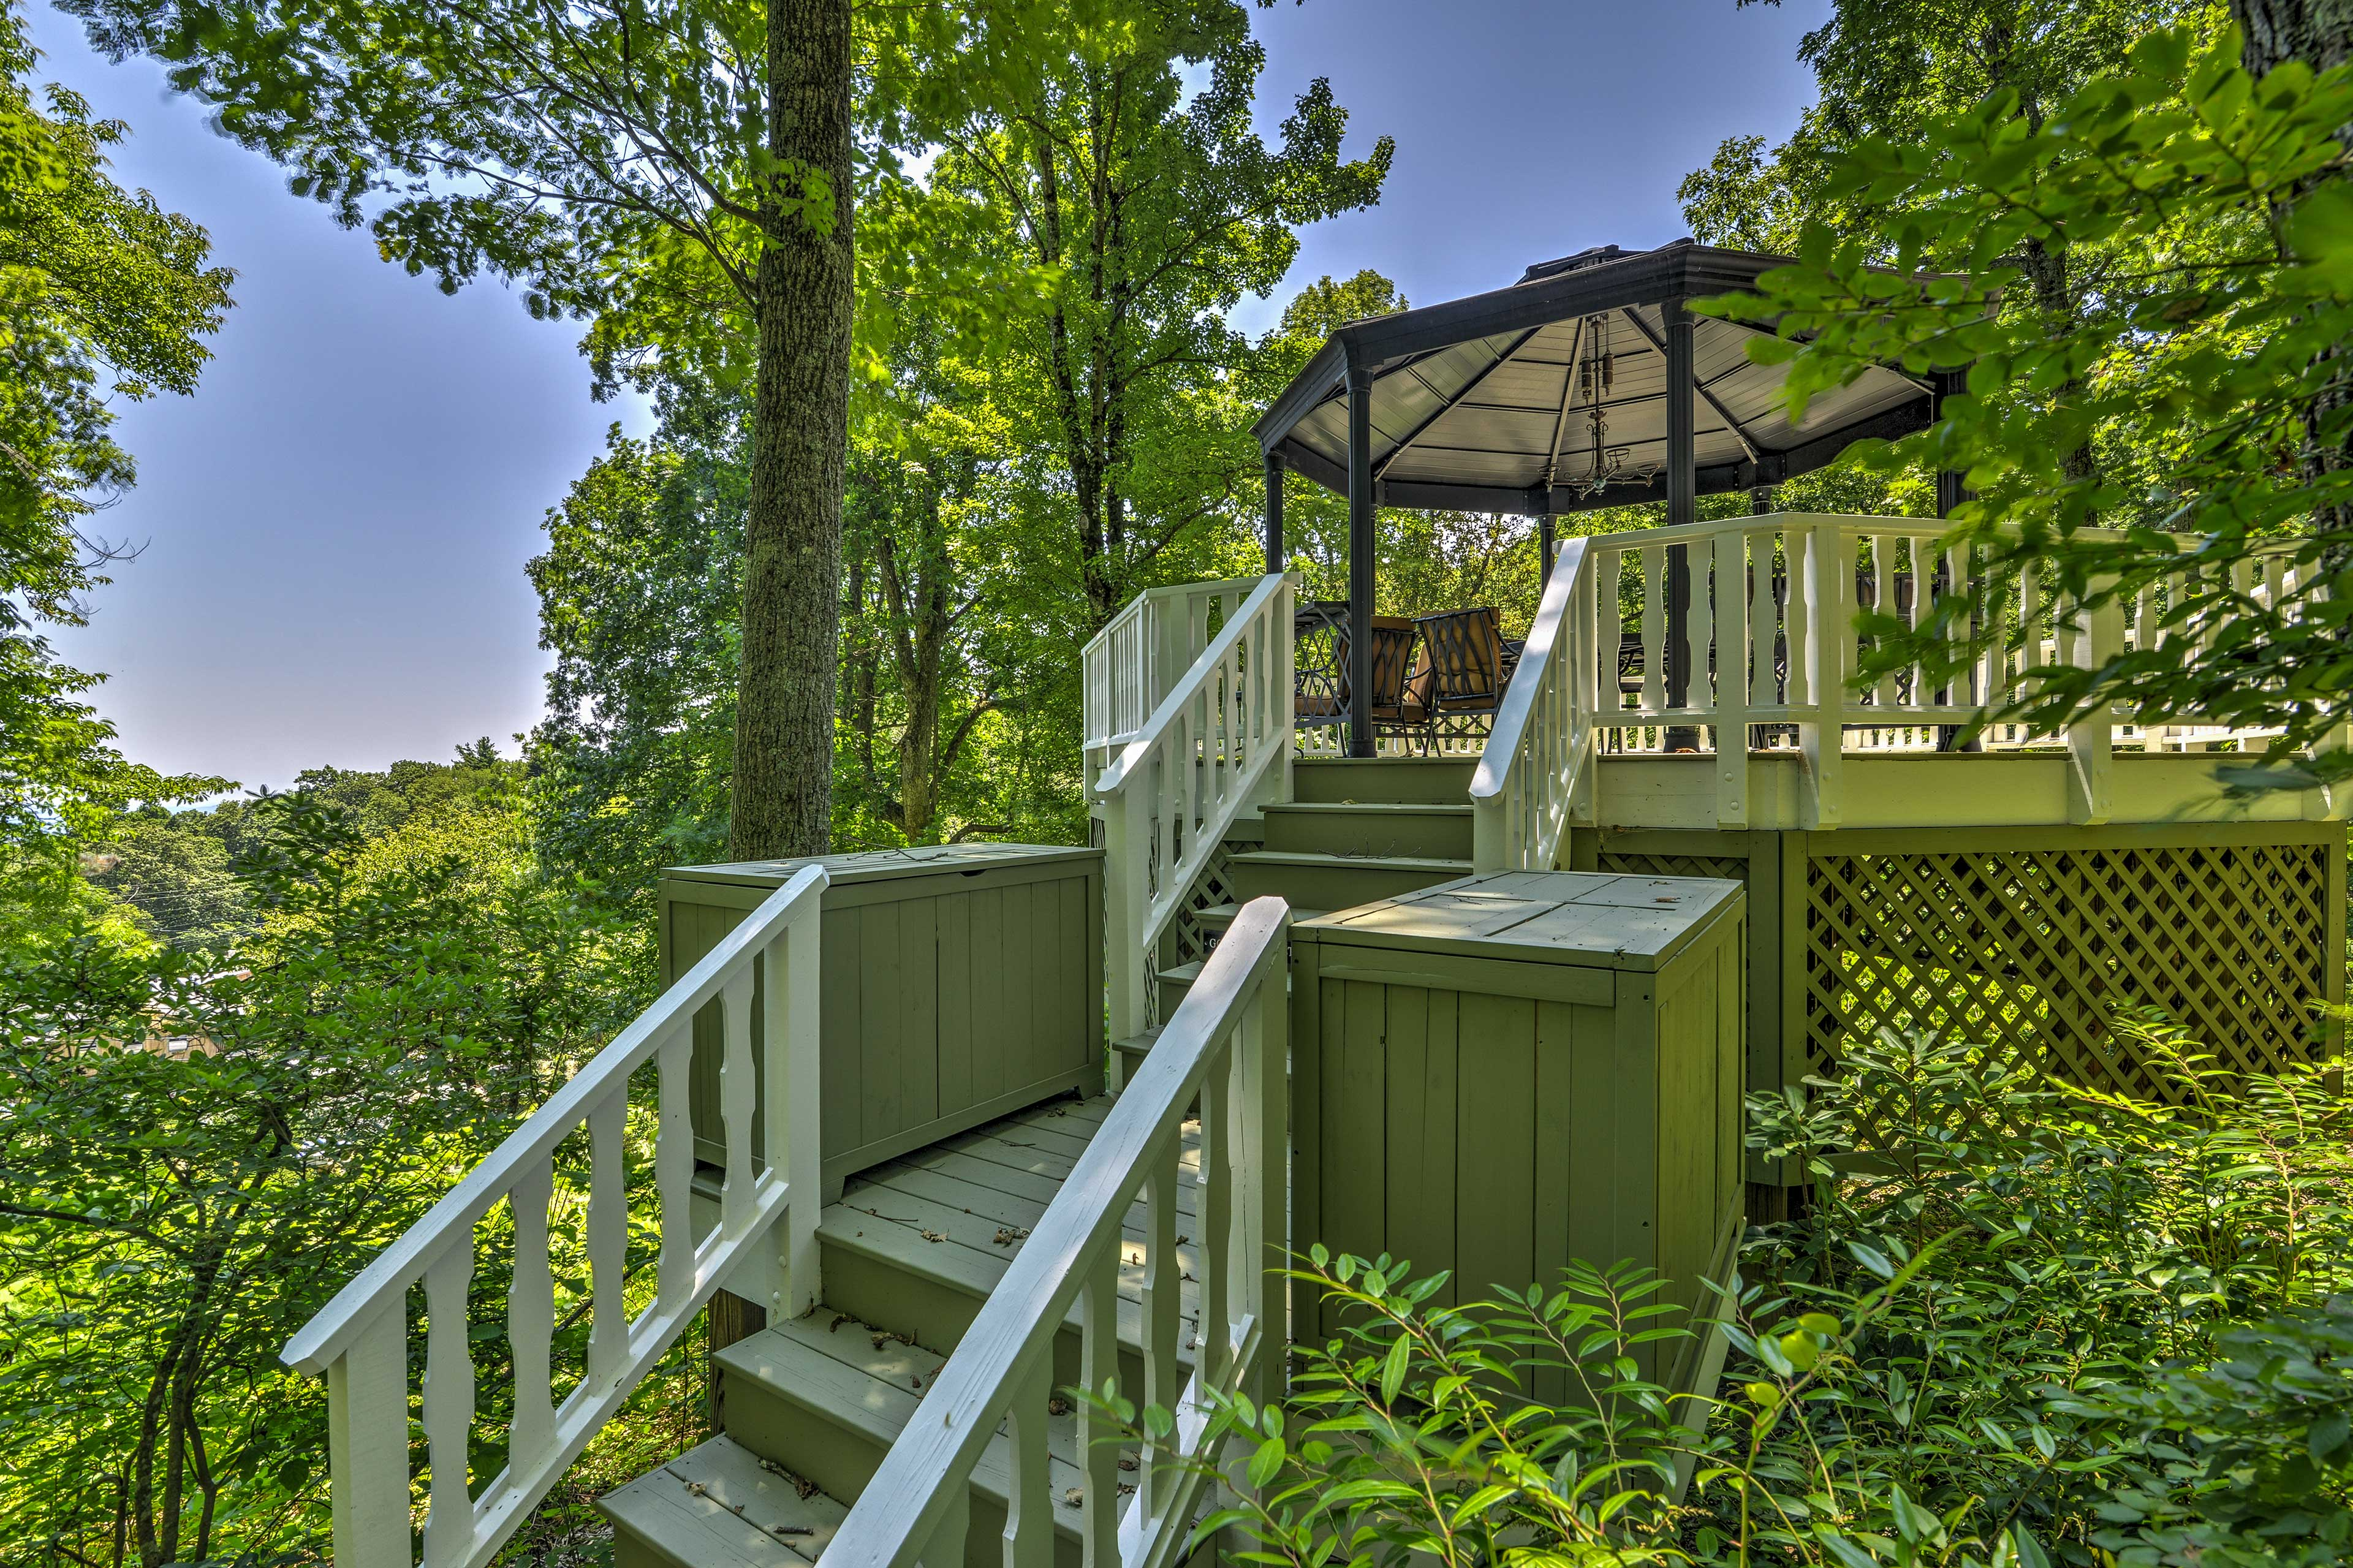 The treehouse offers views of the Catawba Valley and Blue Ridge Mountains.